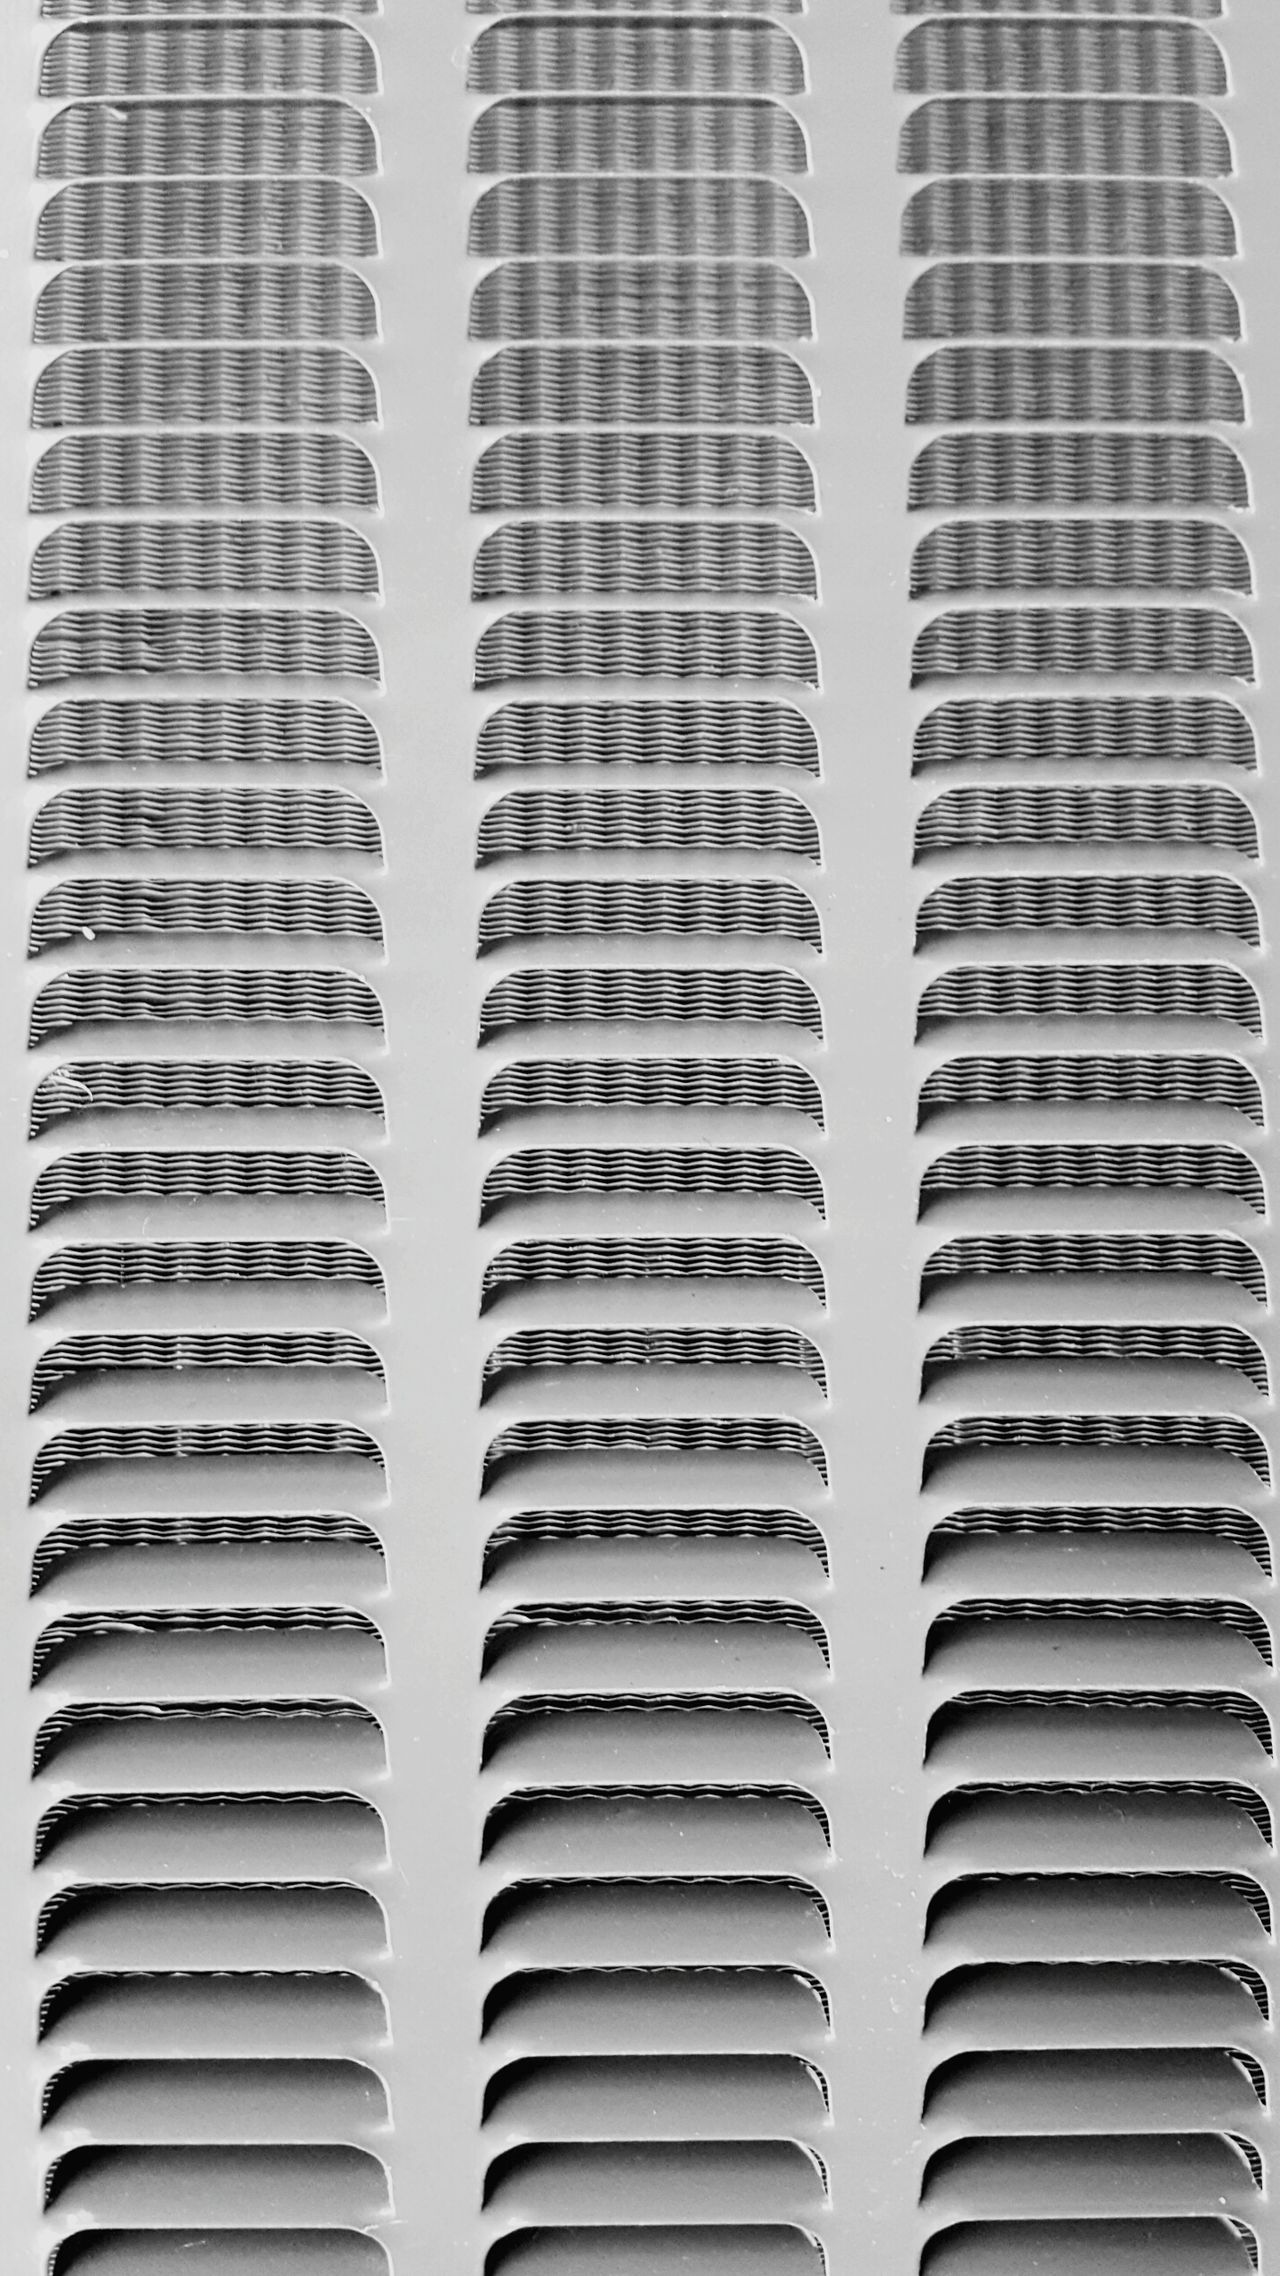 Air conditioning unit vent Backgrounds Full Frame Textured  Pattern Close-up No People Texture Photography Simple Cellphone Photography Machinery Black And White Modern Abstract